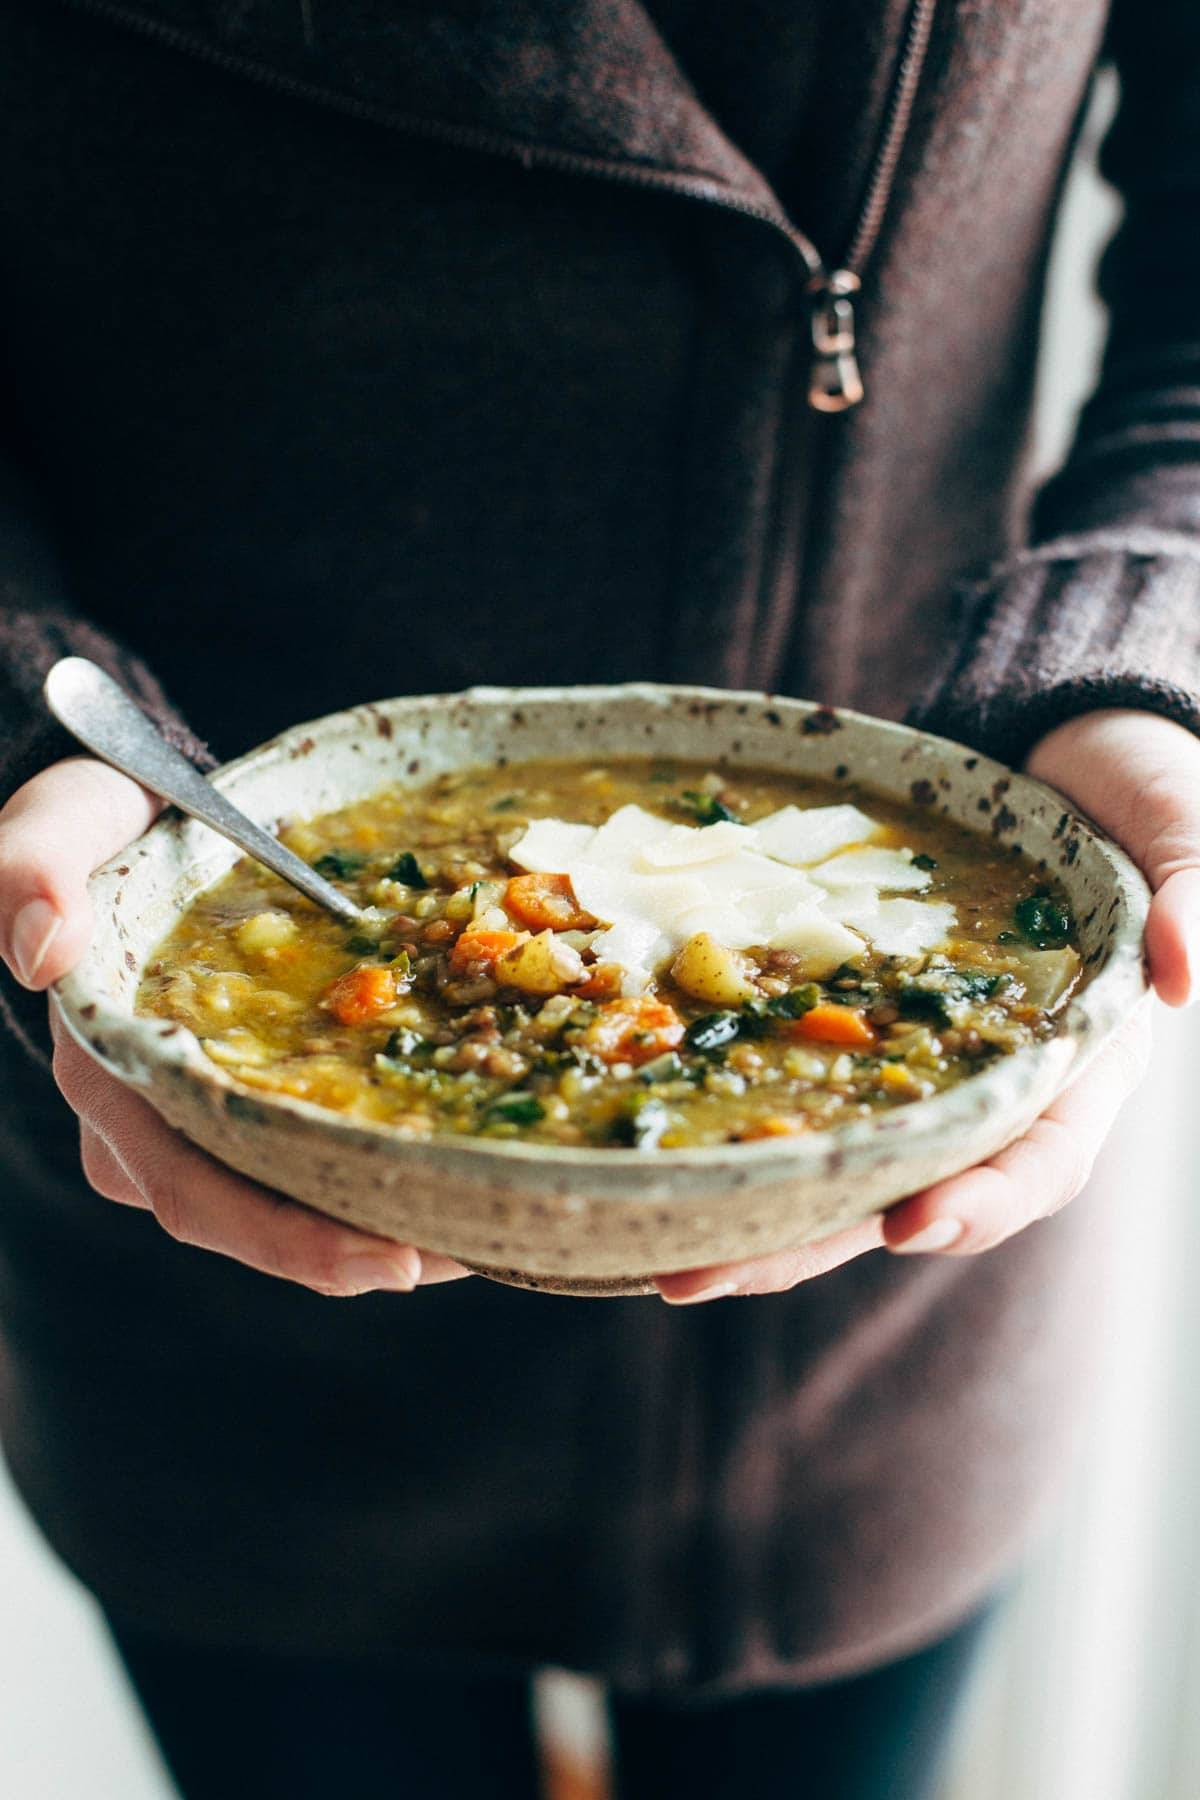 person holding lentil soup in a bowl with a spoon